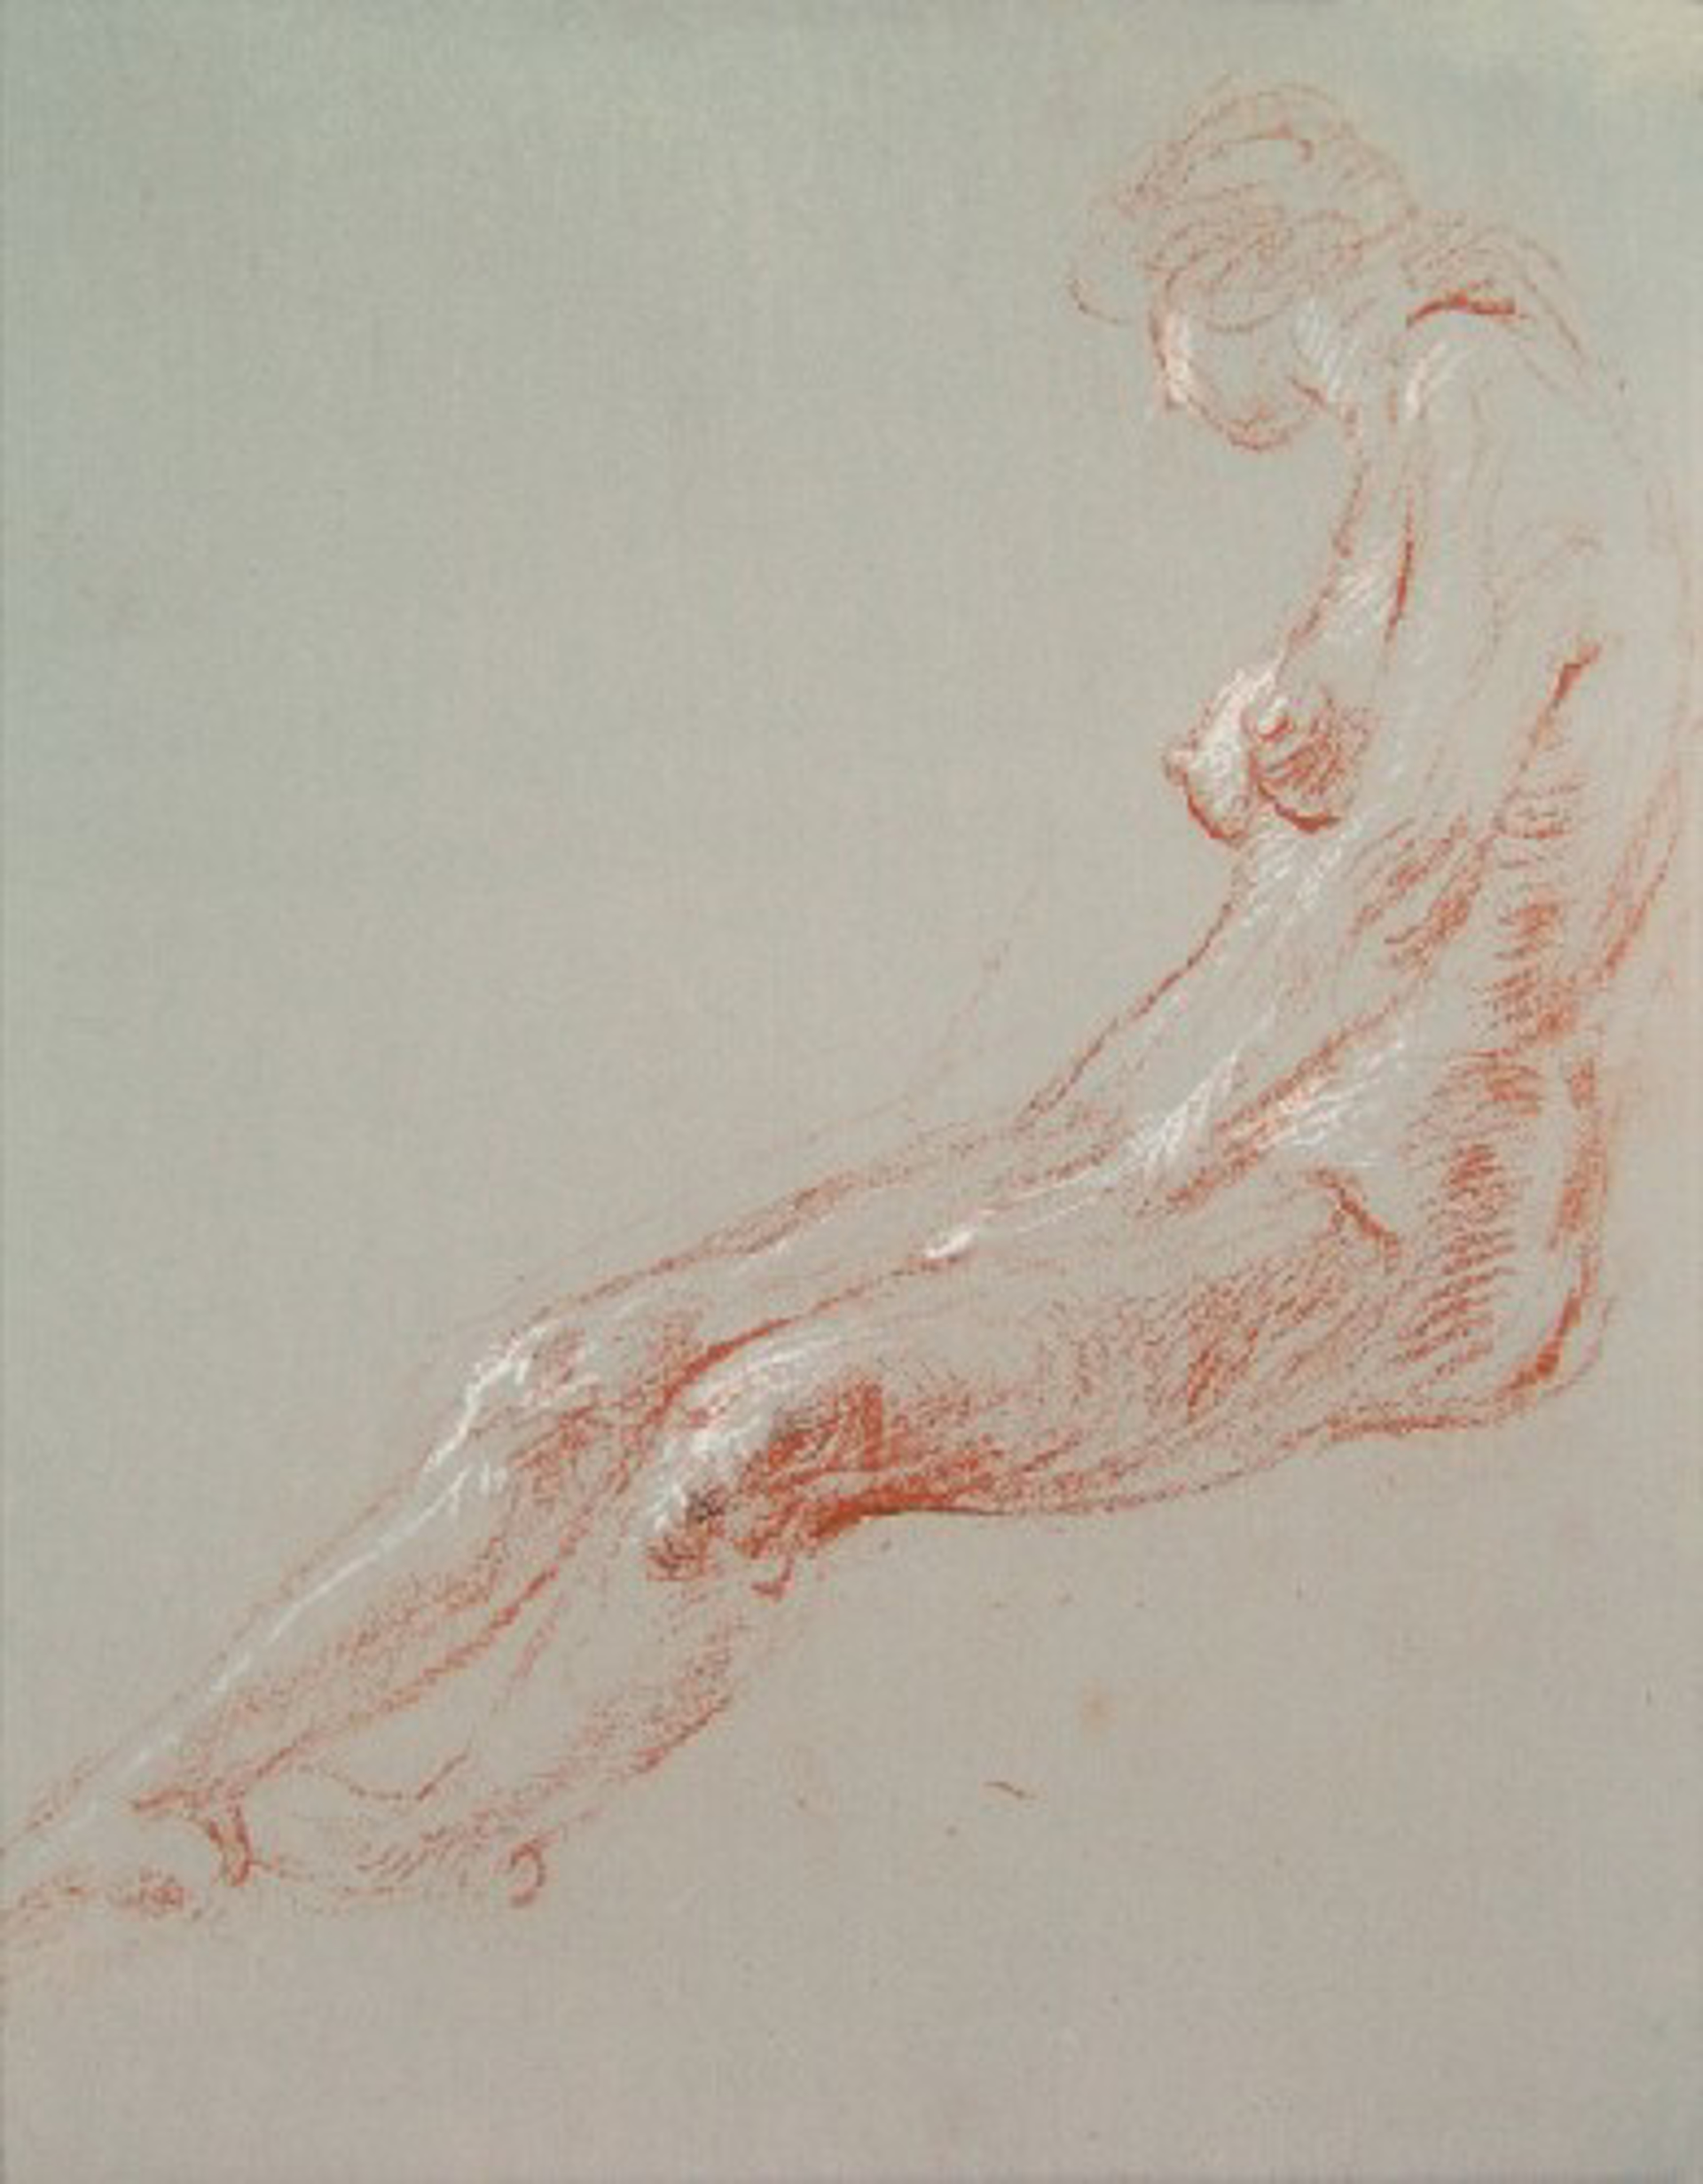 Seated Female Figure, Side View by Frank Mason (1921 - 2009)